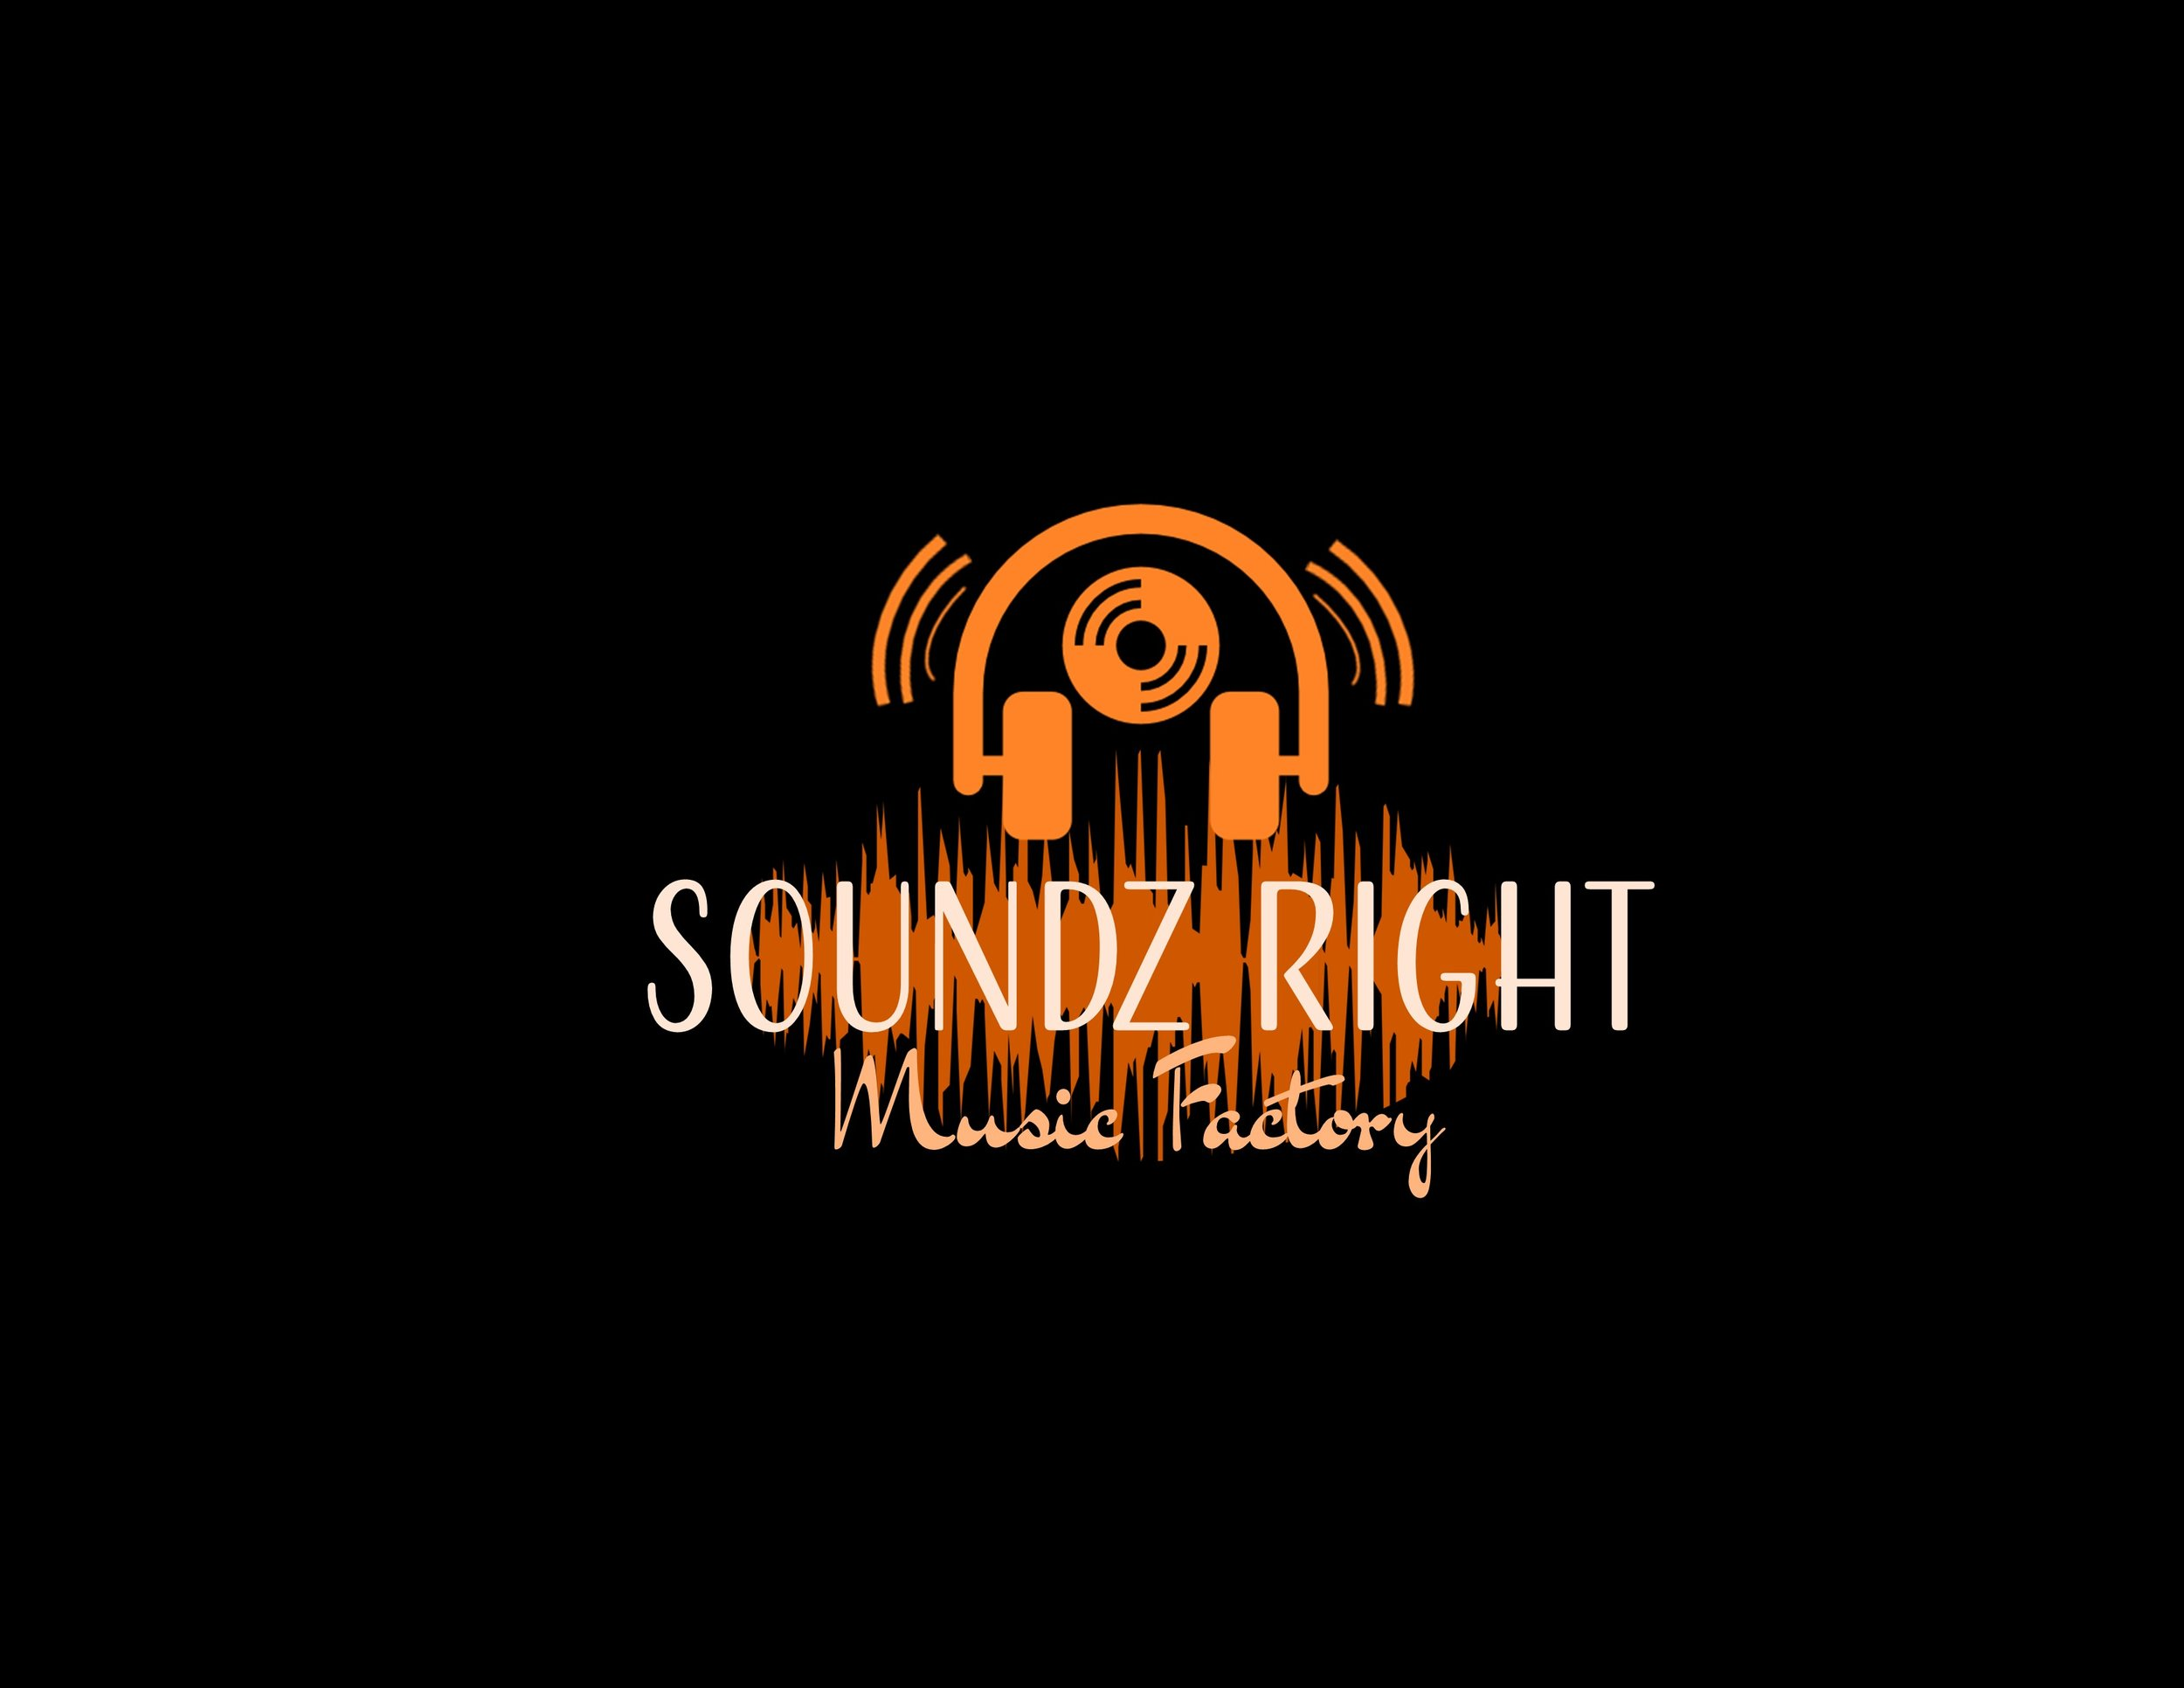 Soundz Right Music Factory - Final Logo.jpg